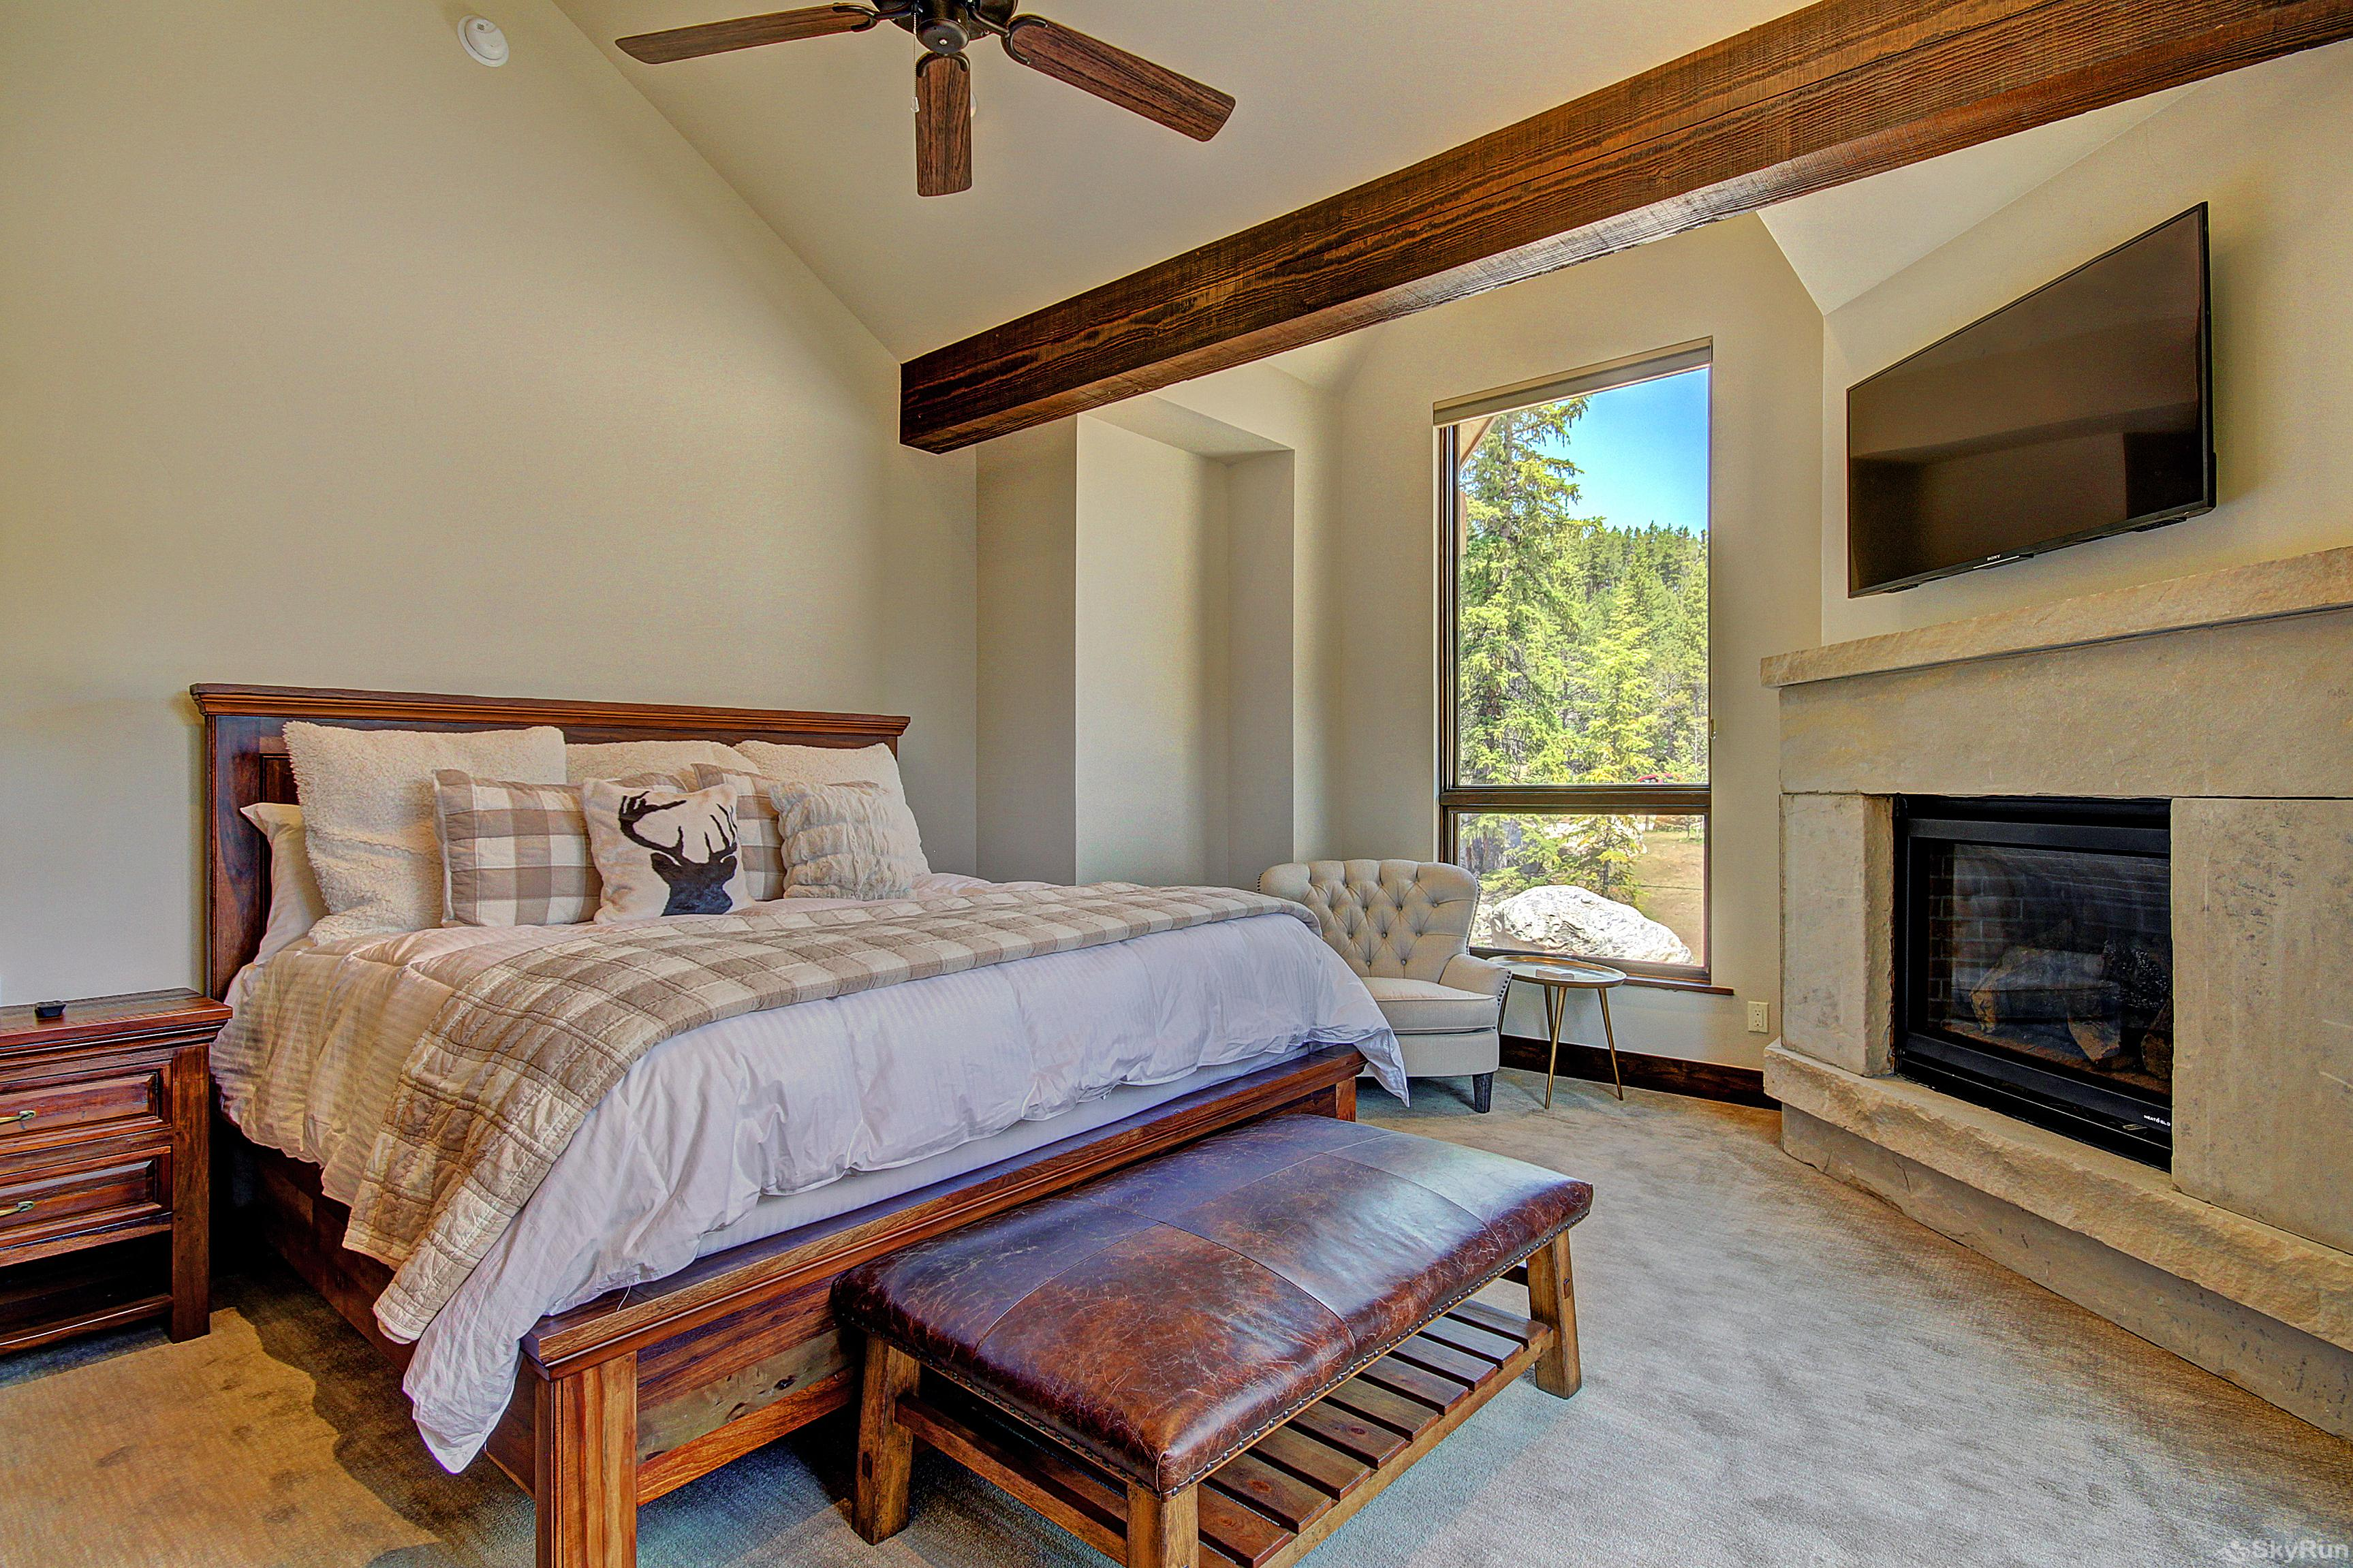 River's Edge Retreat Alternate view of upper level king master suite with TV & gas fireplace